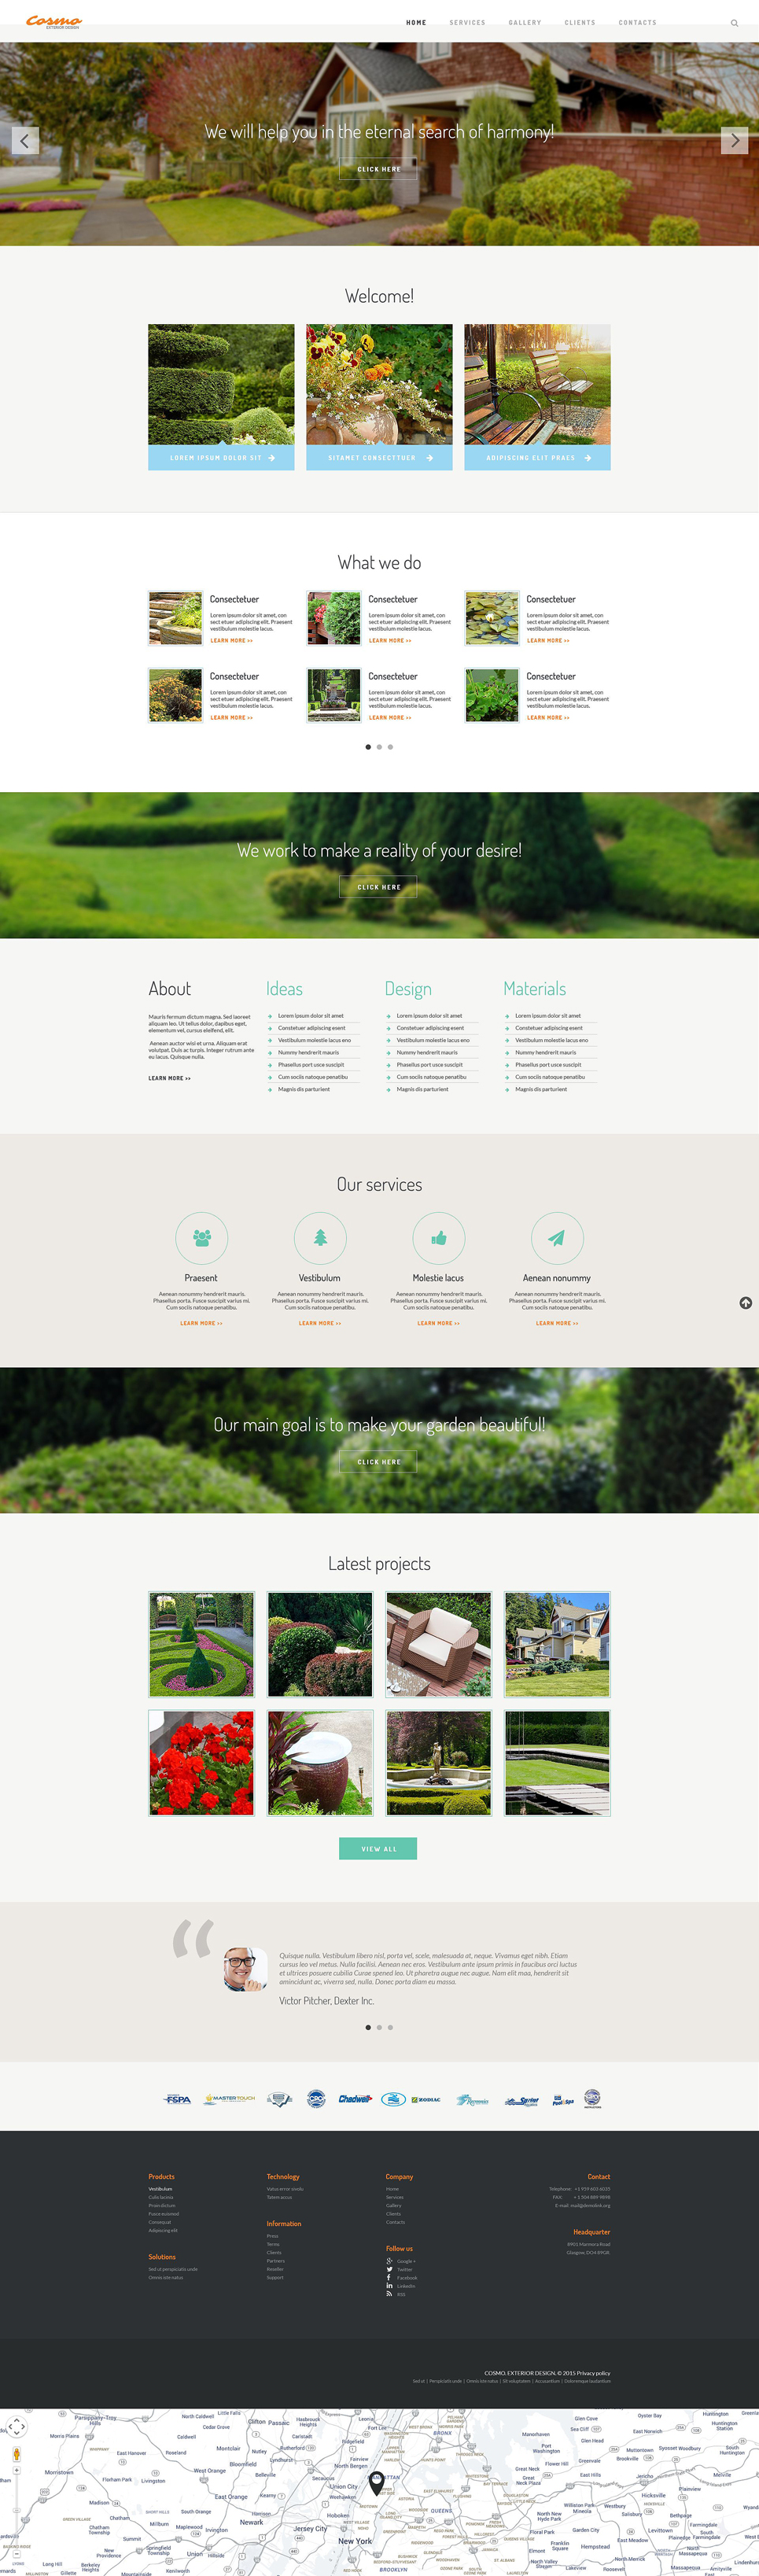 Template 54566 ensegna themes for Car exterior design software download